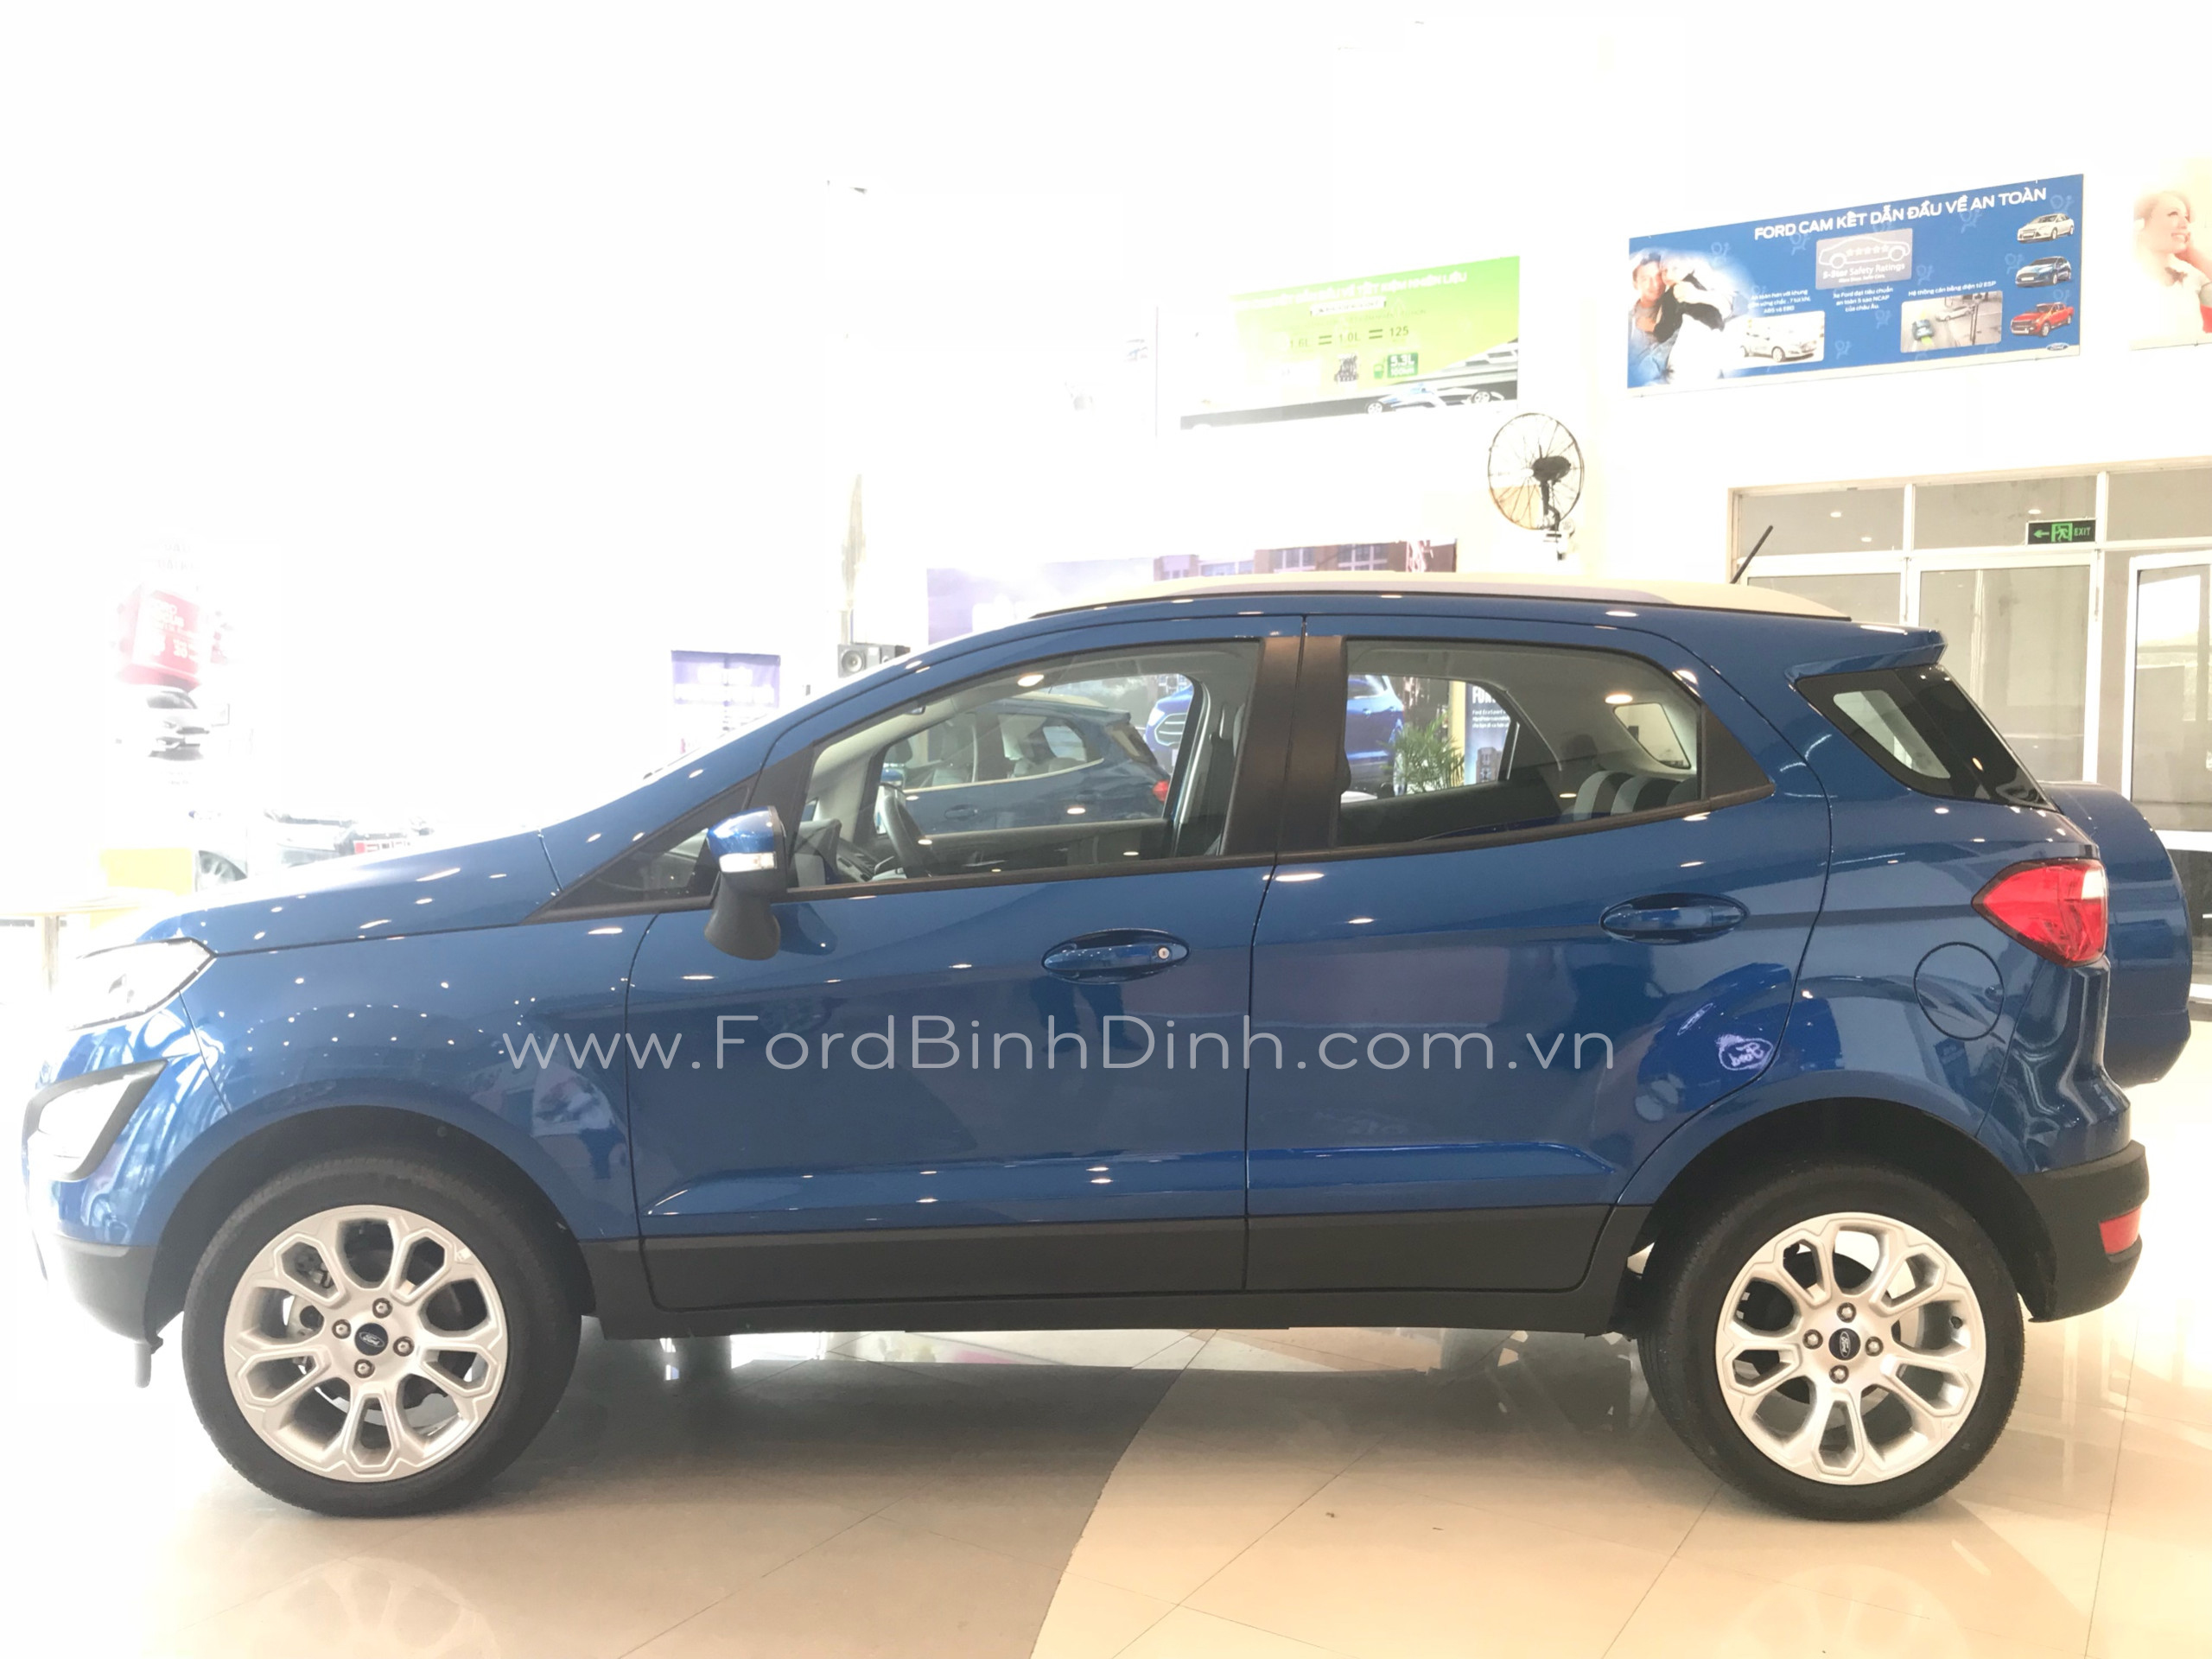 ecosport-2018-trend-at2-ford-binh-dinh-com-vn